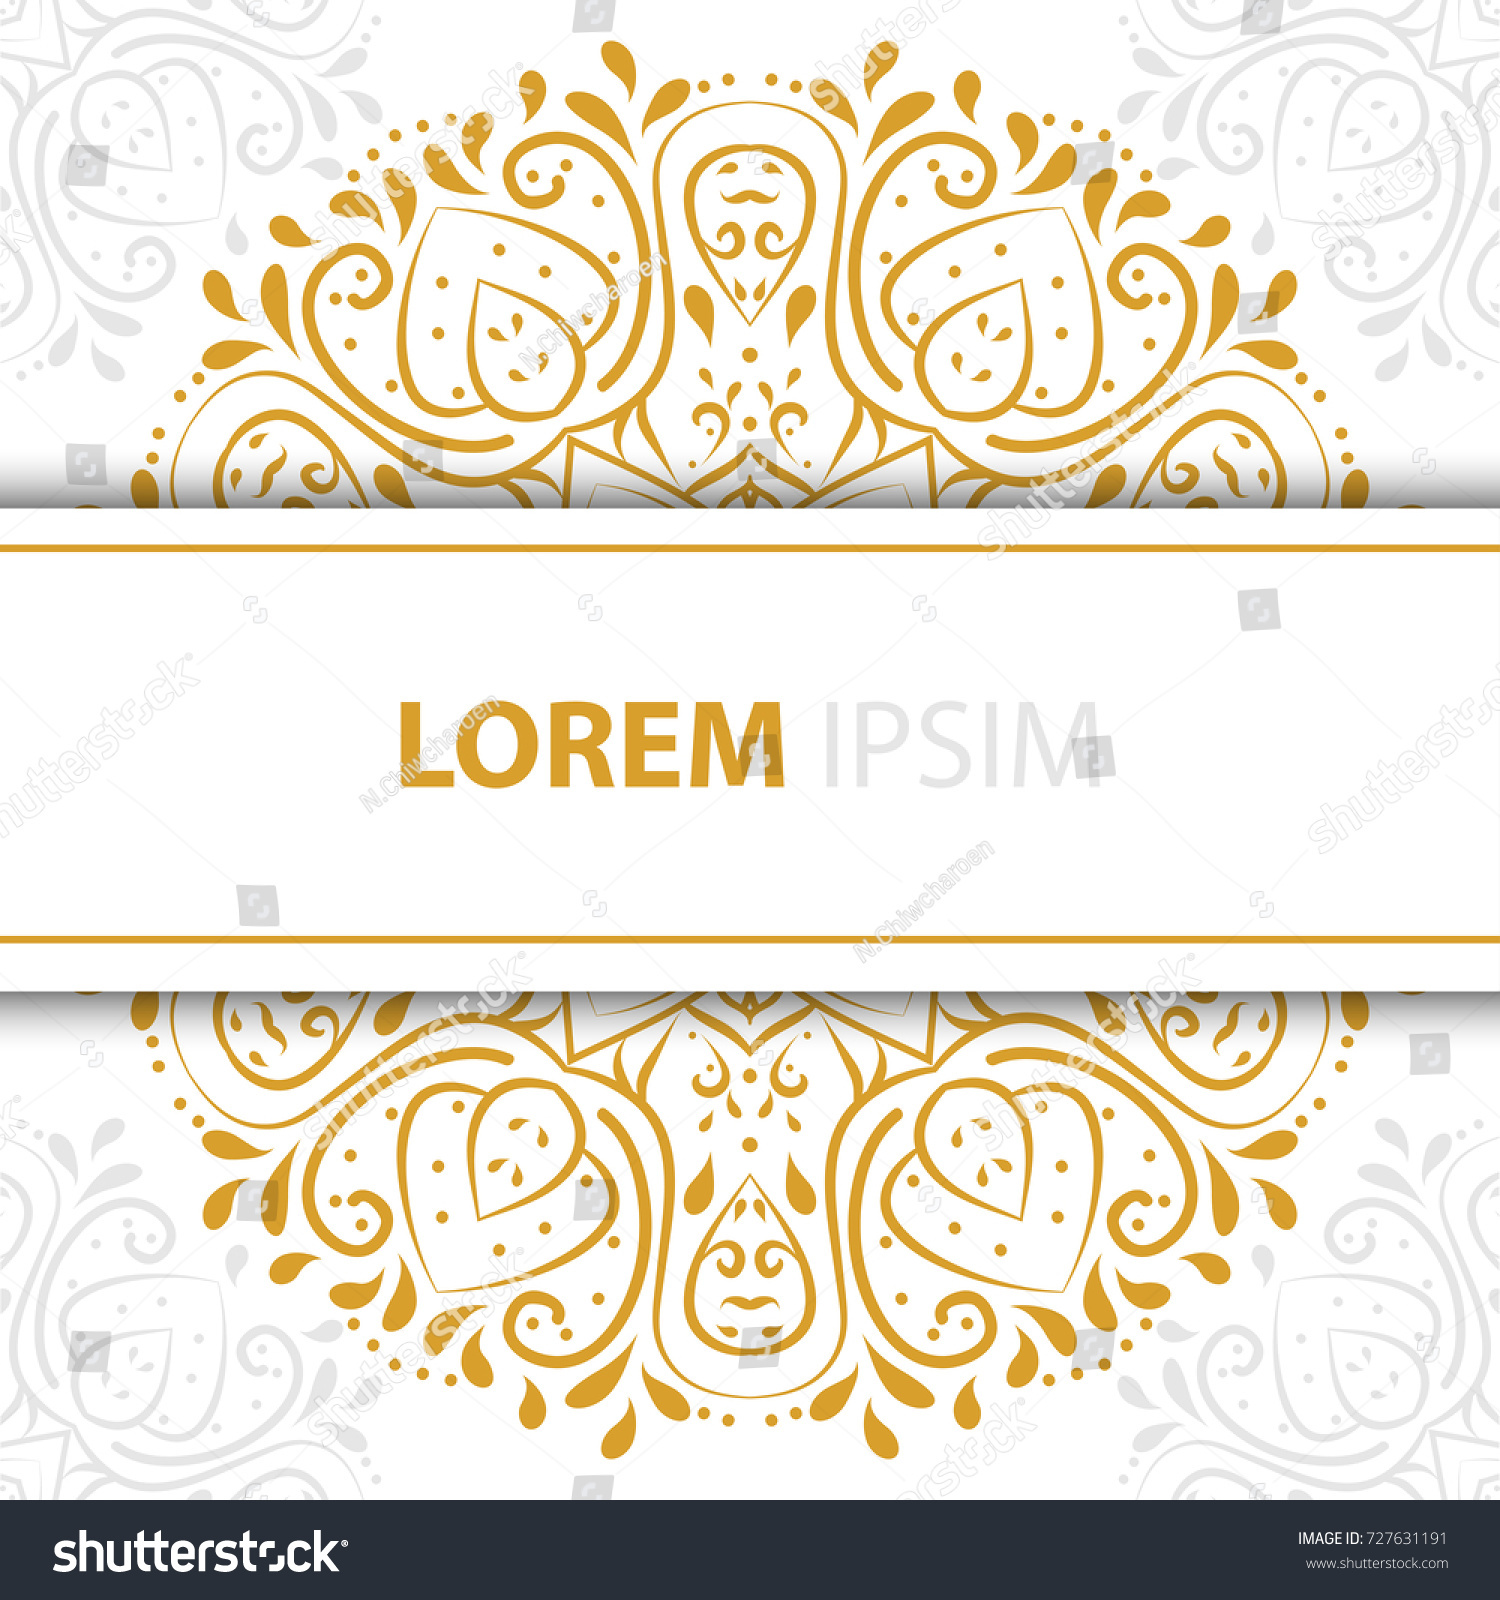 Abstract luxury background ornament elegant invitation stock abstract luxury background ornament elegant invitation wedding card invite backdrop cover banner illustration stopboris Choice Image